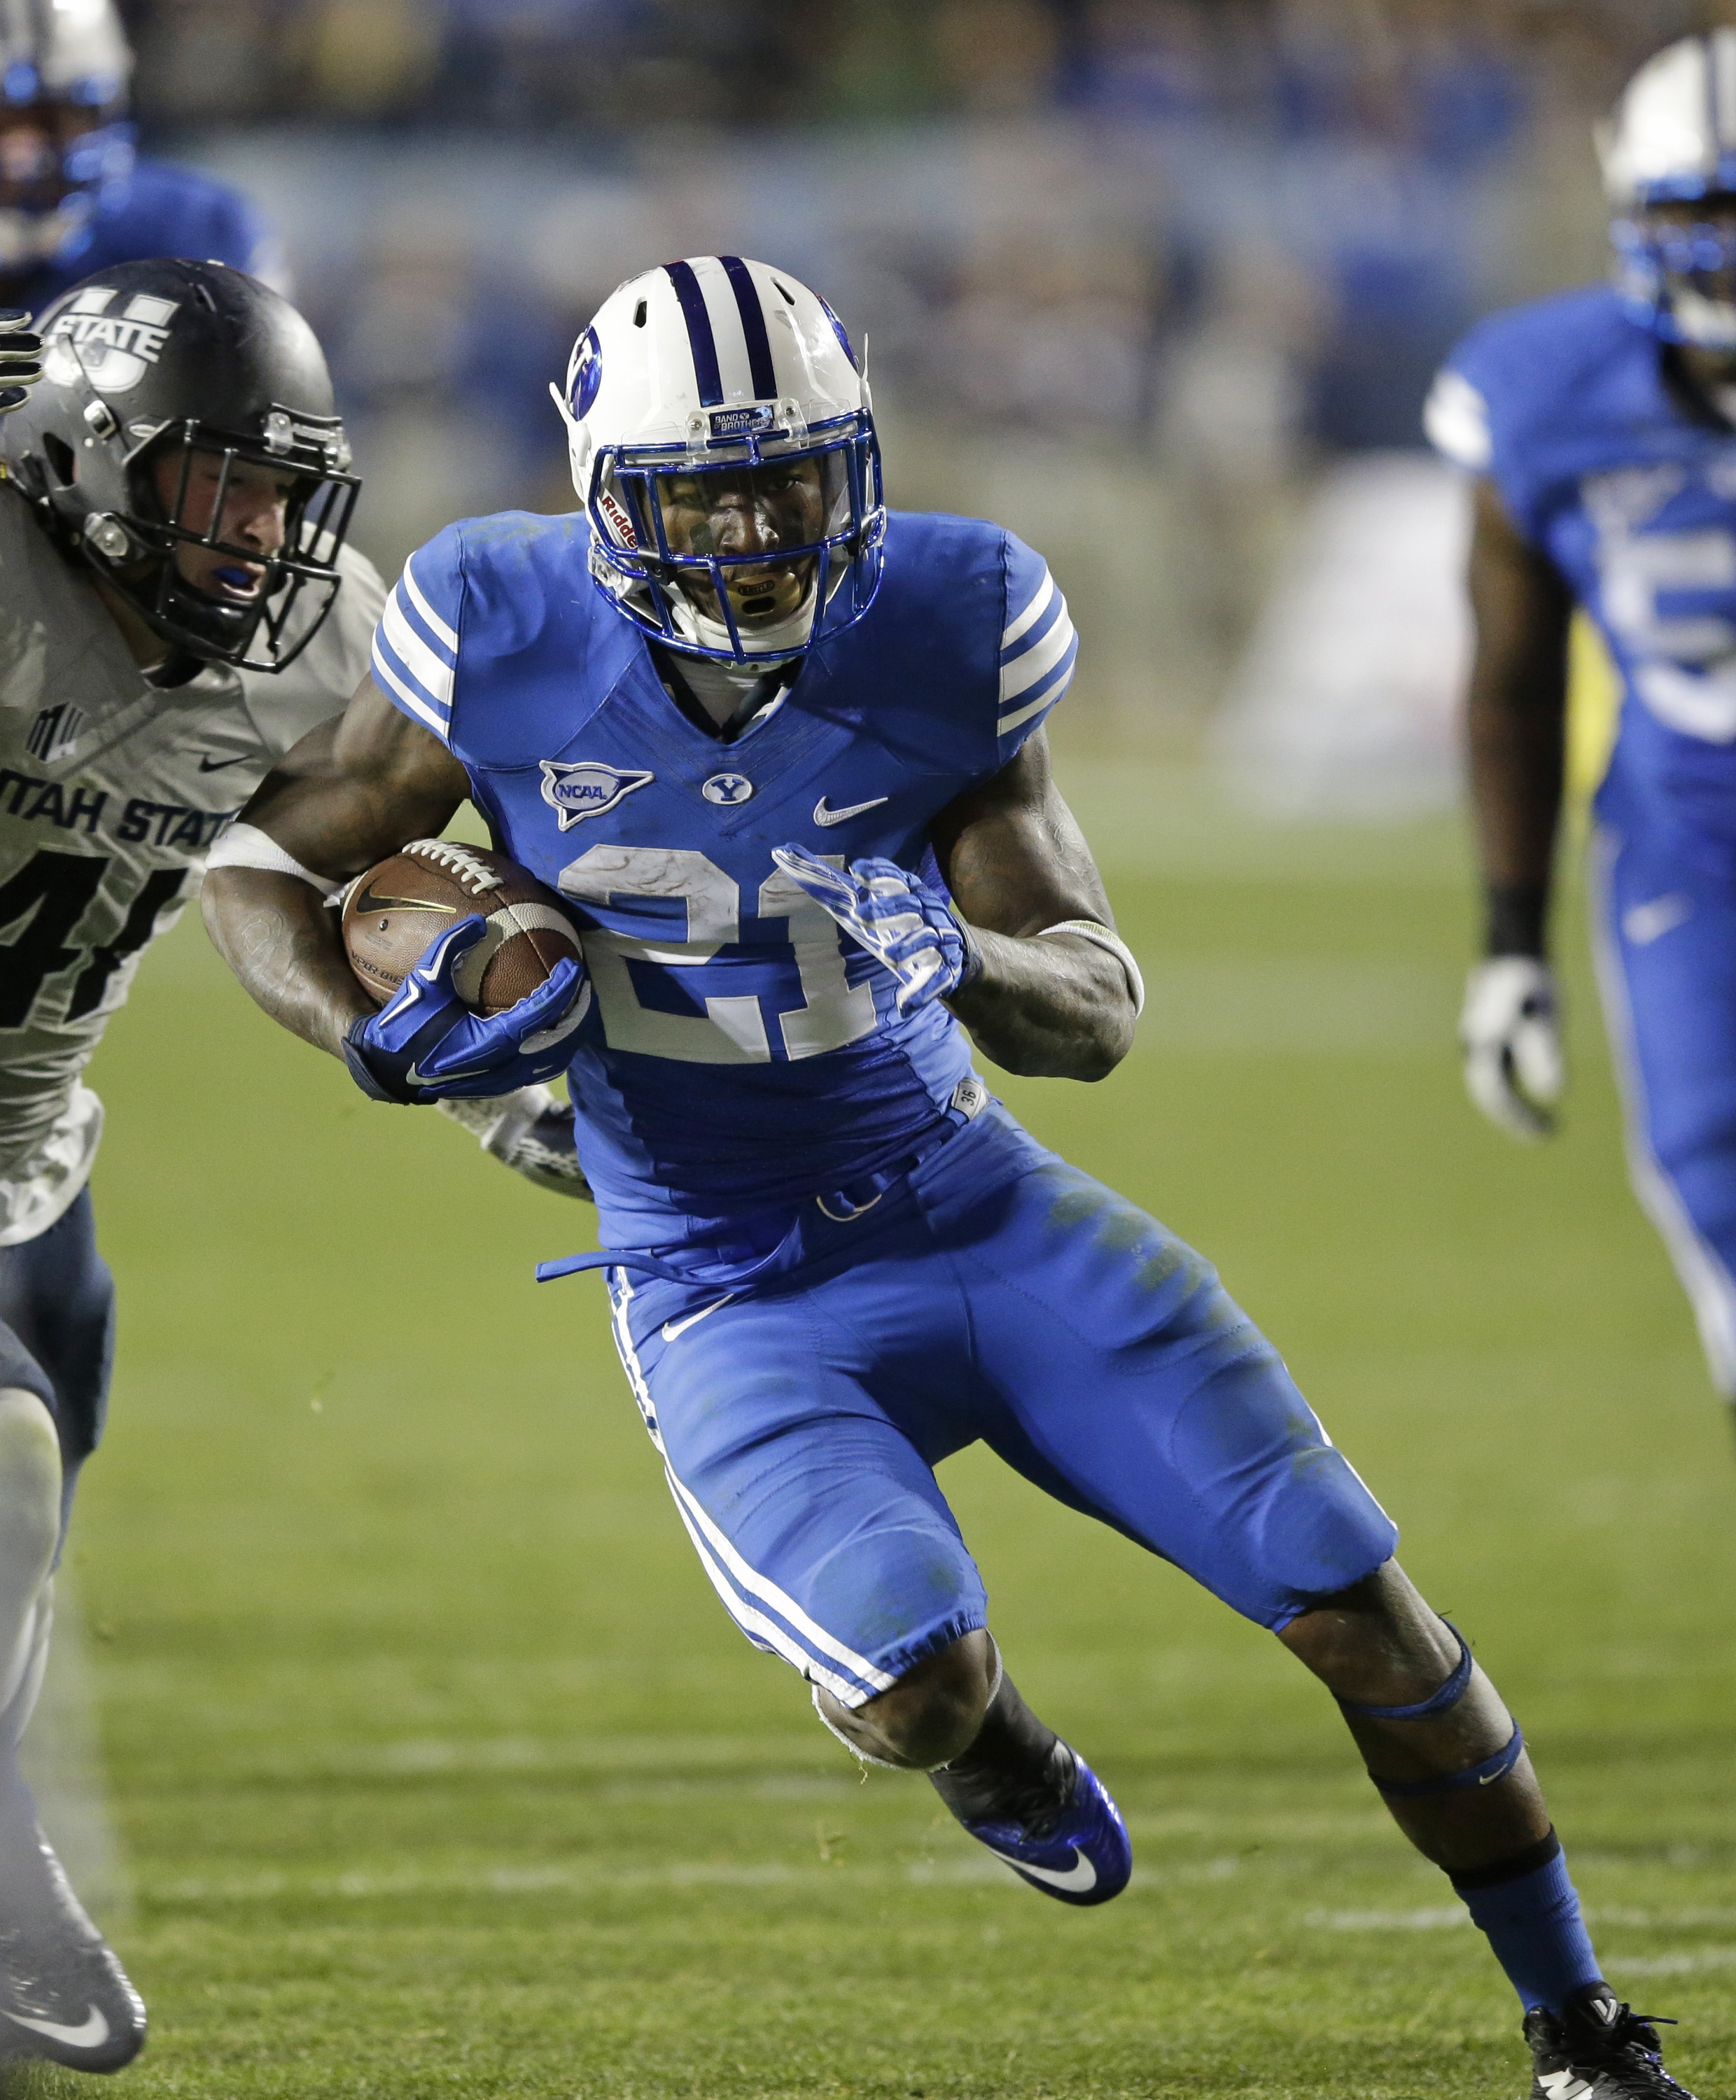 Brigham Young running back Jamaal Williams (21) carries the ball in the second half during an NCAA college football game against Utah State Friday, Oct. 3, 2014, in Provo, Utah. (AP Photo/Rick Bowmer)